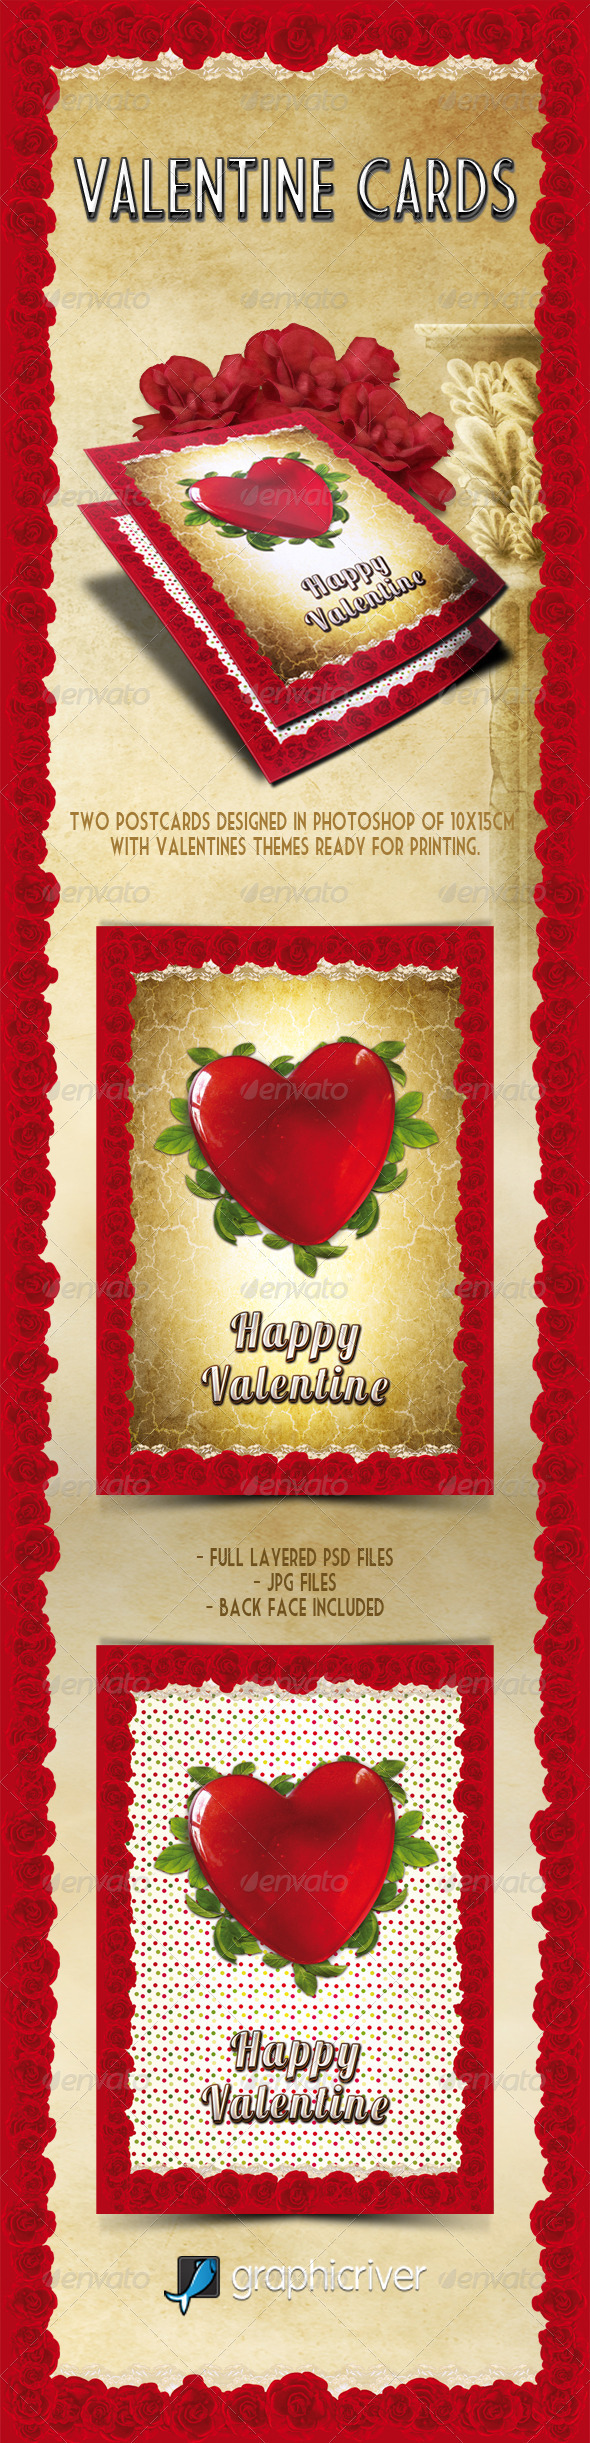 Valentines Cards - Holiday Greeting Cards